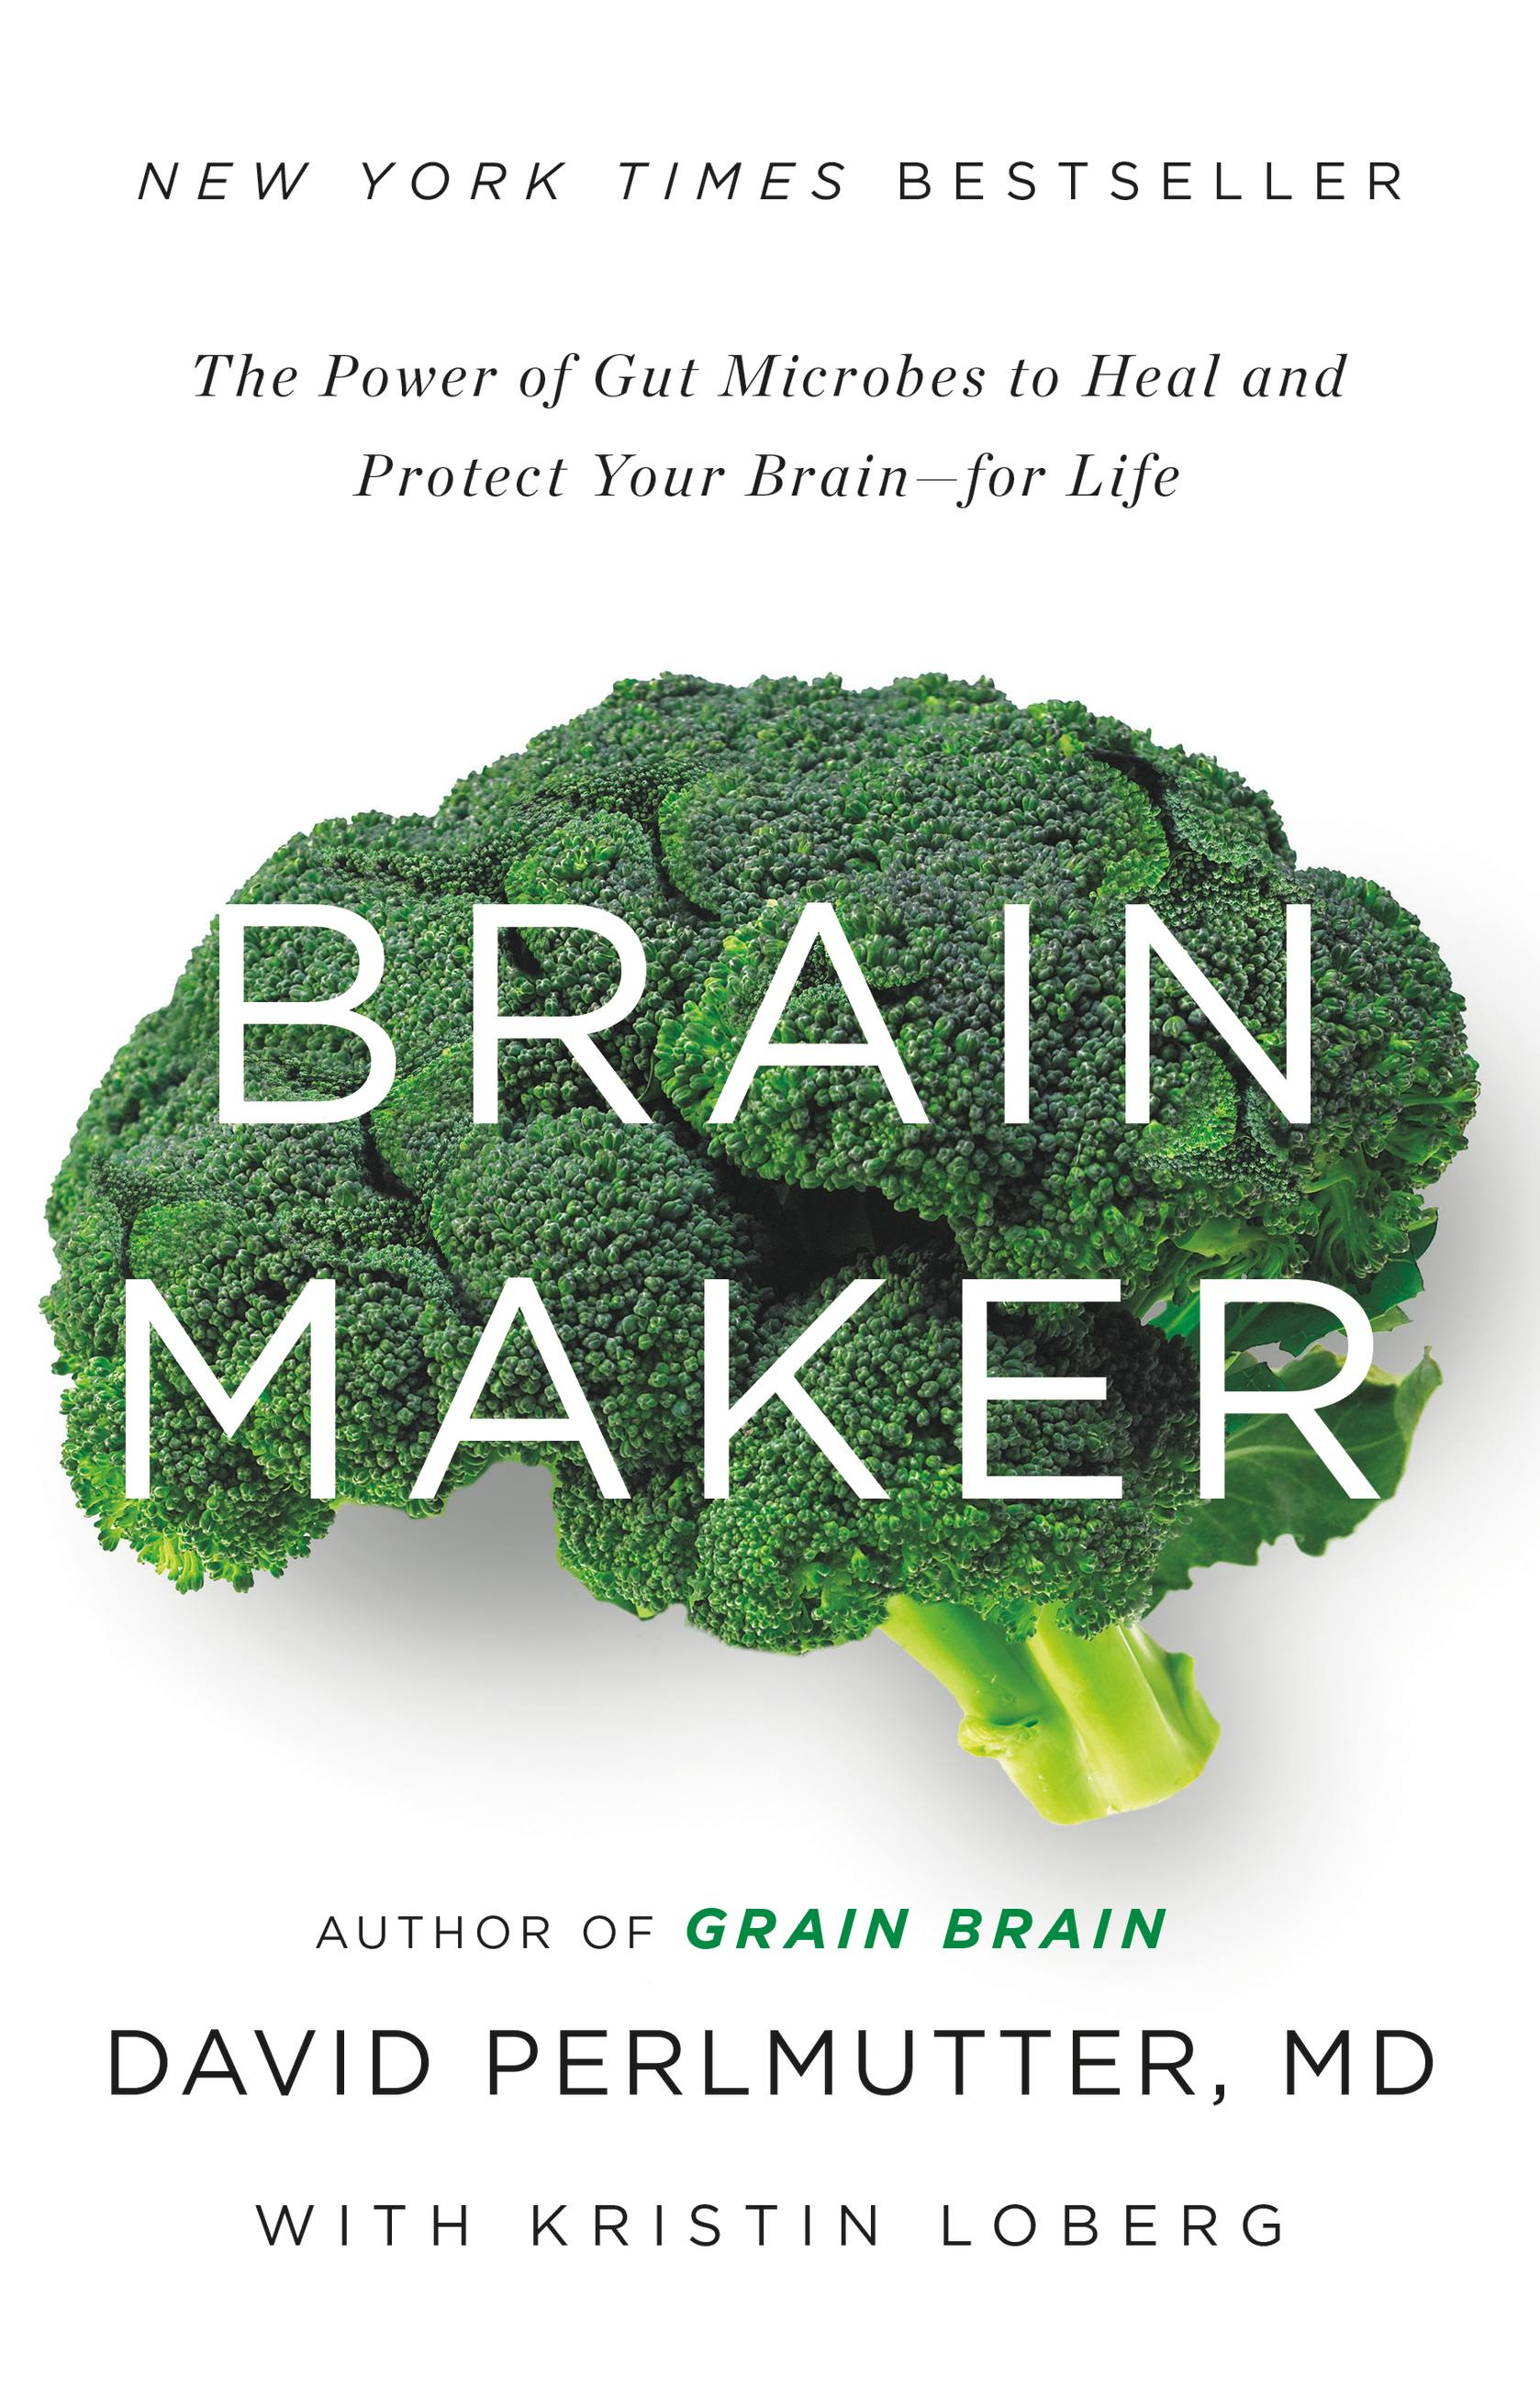 Brain Maker The Power of Gut Microbes to Heal and Protect Your Brain ¿ for Life